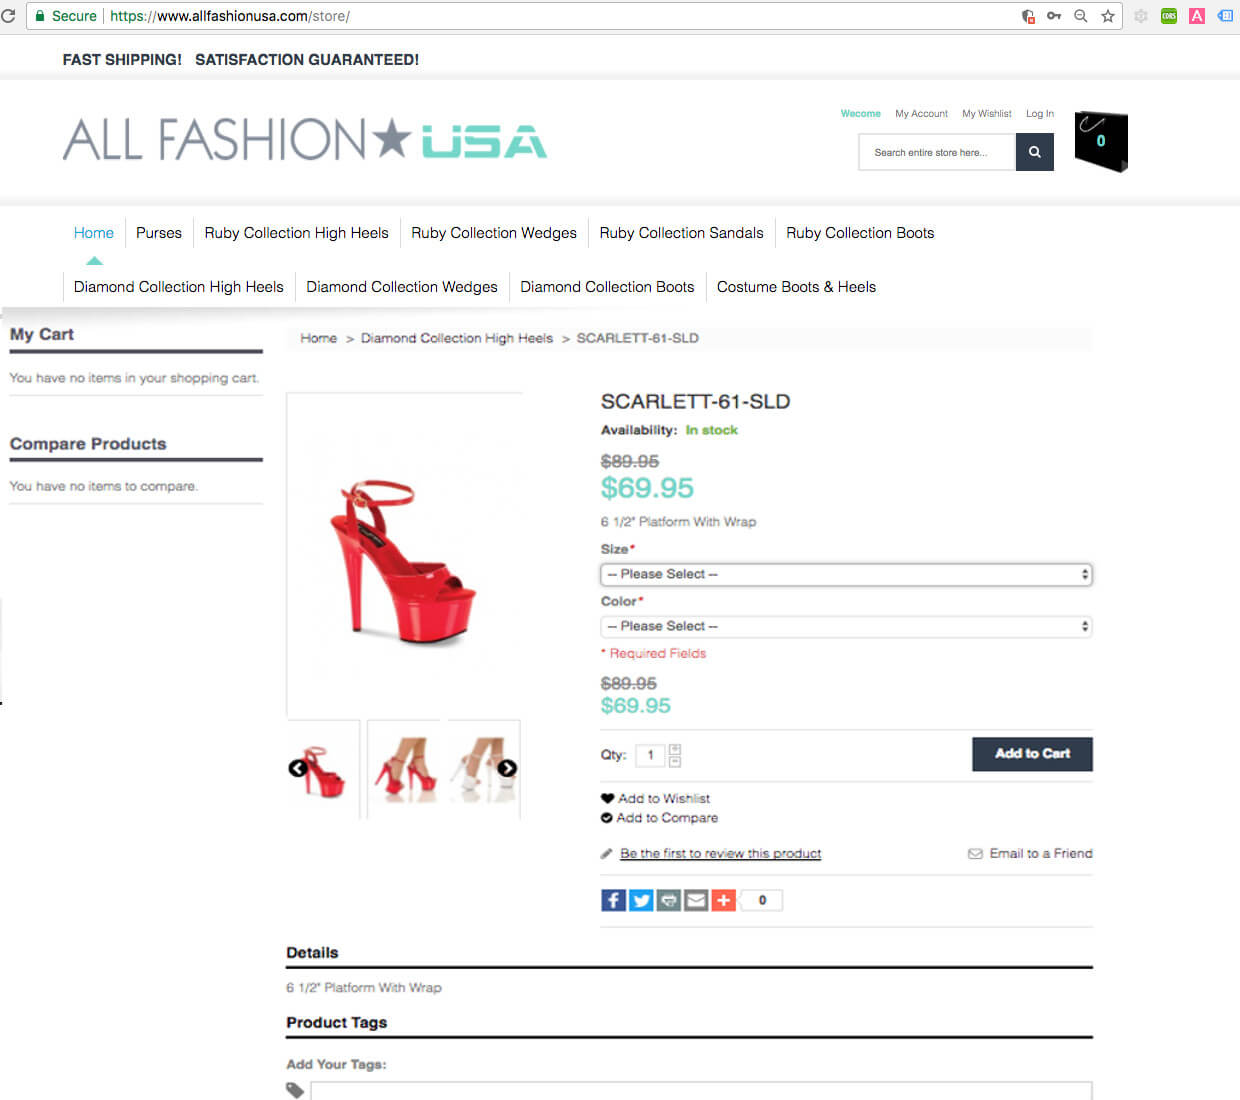 Magento Product Page Example - by After Dark Grafx